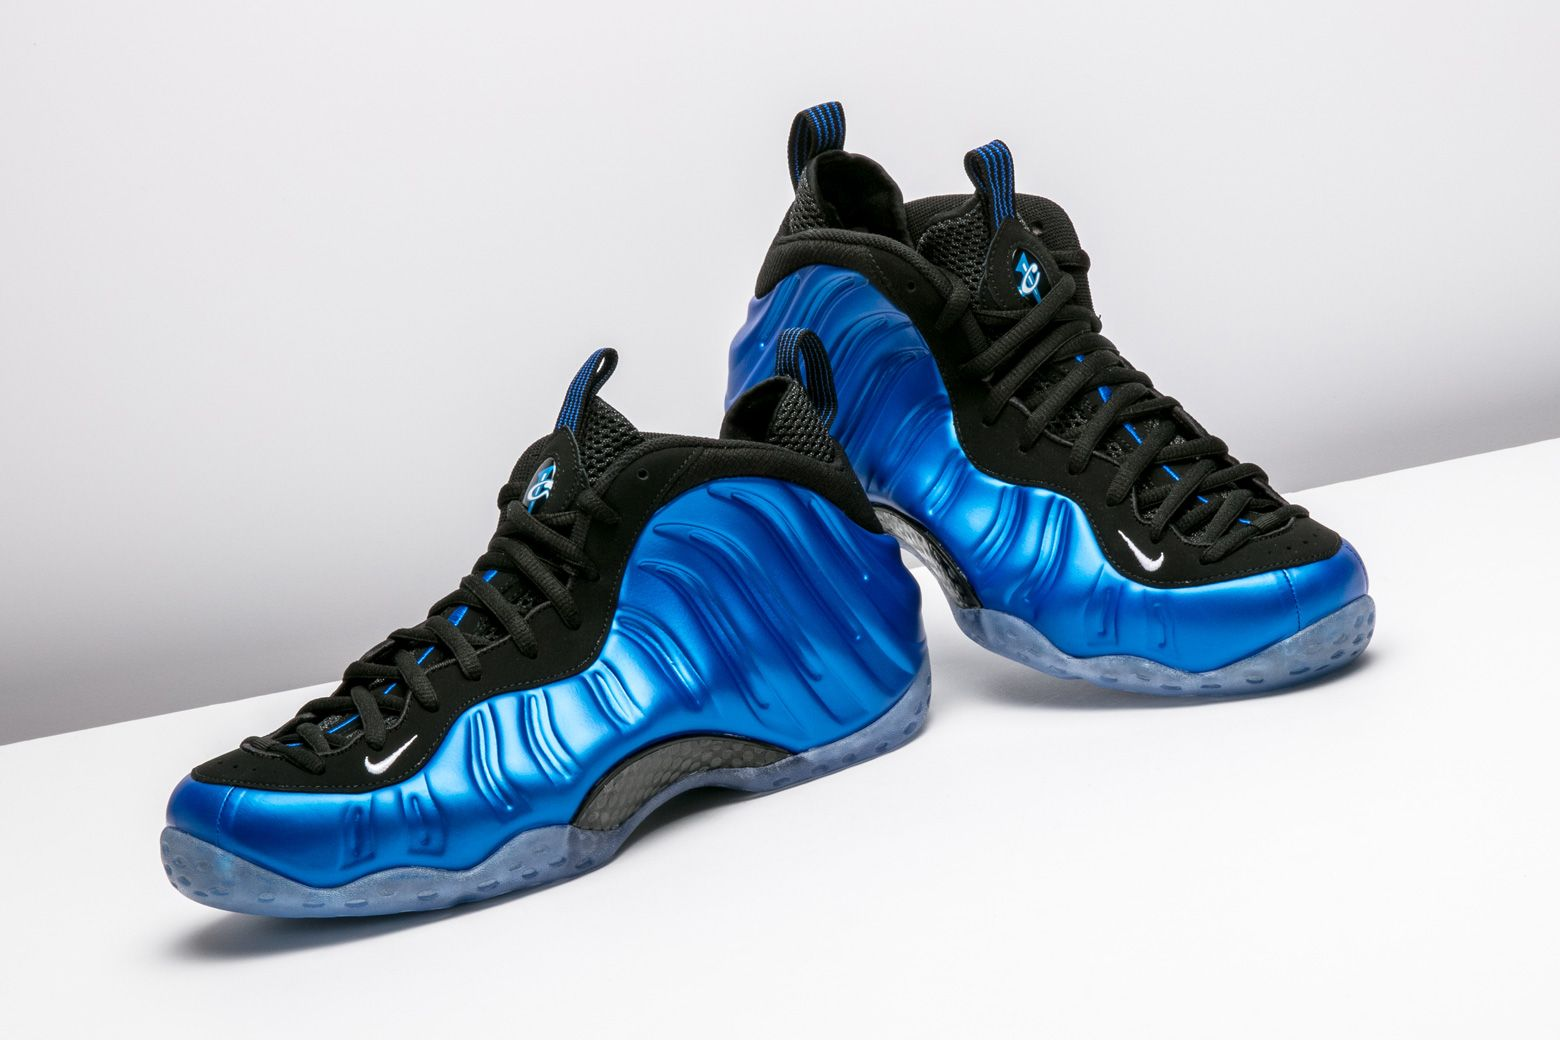 separation shoes a3478 4f623 The OG colorway of the Nike Air Foamposite One releases in celebration of  its 20th anniversary